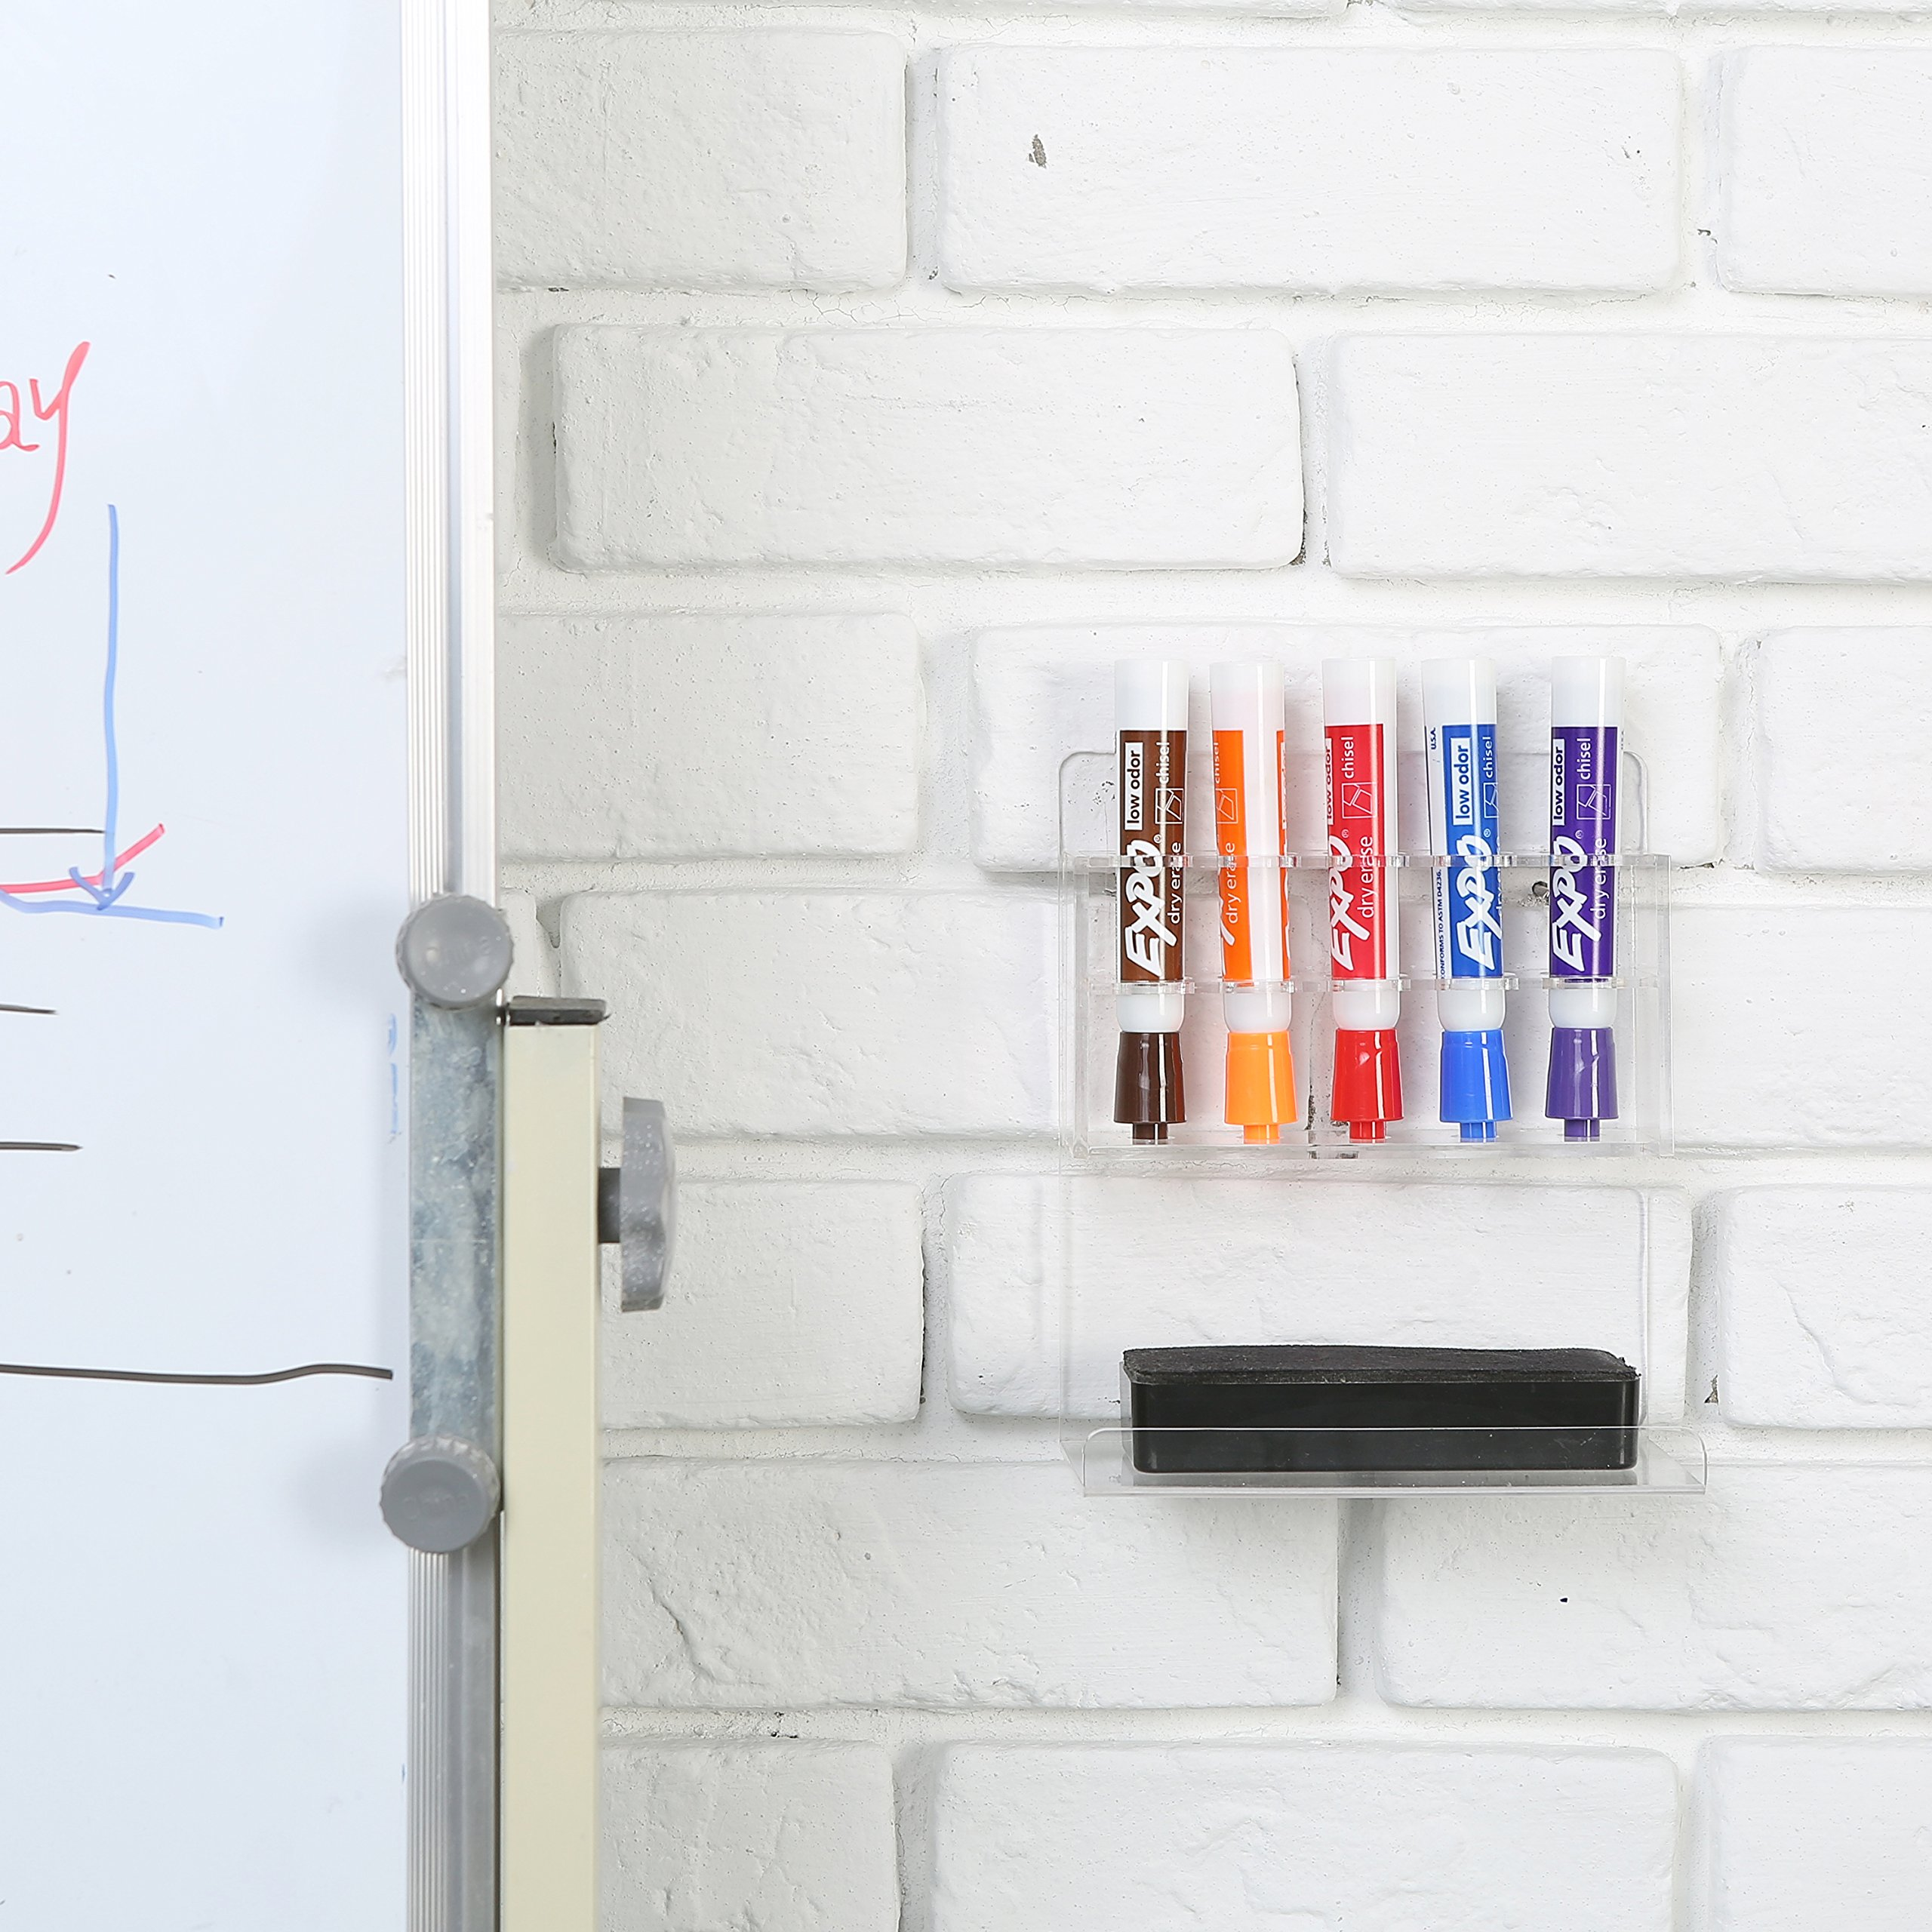 MyGift Clear Acrylic Wall Mounted 5 Slot Dry Erase Marker and Eraser Organizer Holder Rack, Set of 2 by MyGift (Image #3)